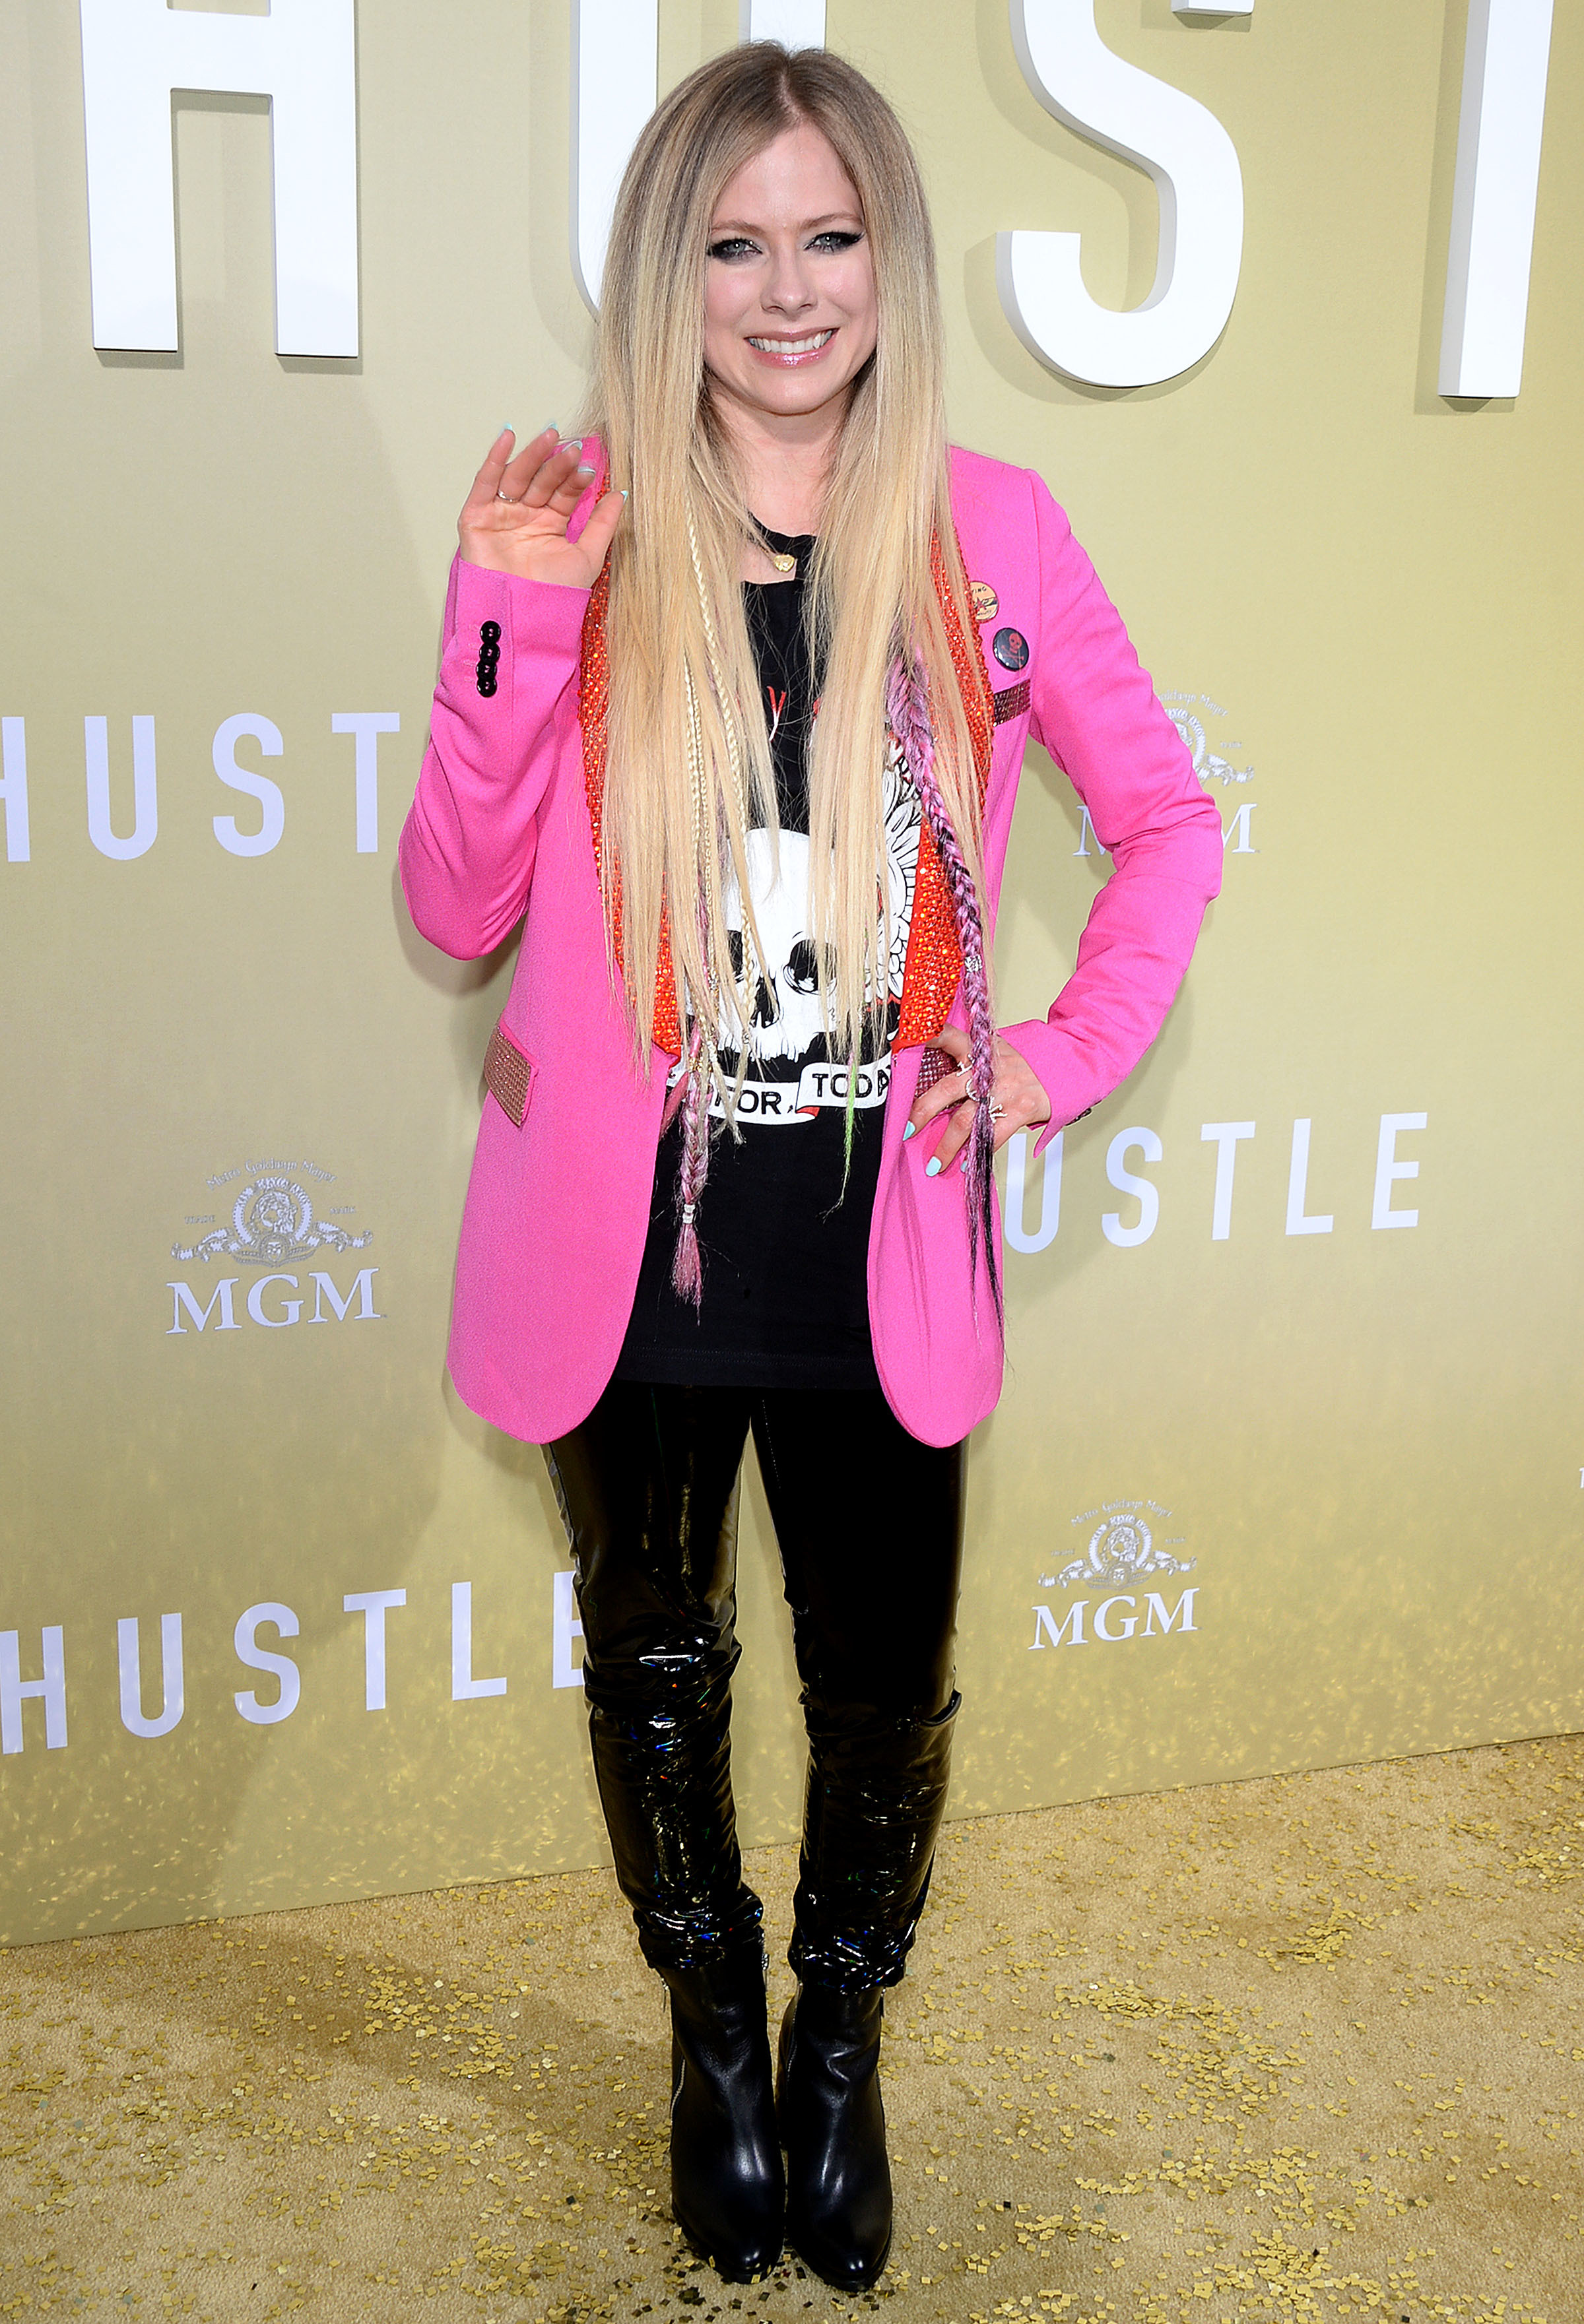 """Avril Lavigne attends """"The Hustle"""" film premiere in Los Angeles on May 8, 2019."""